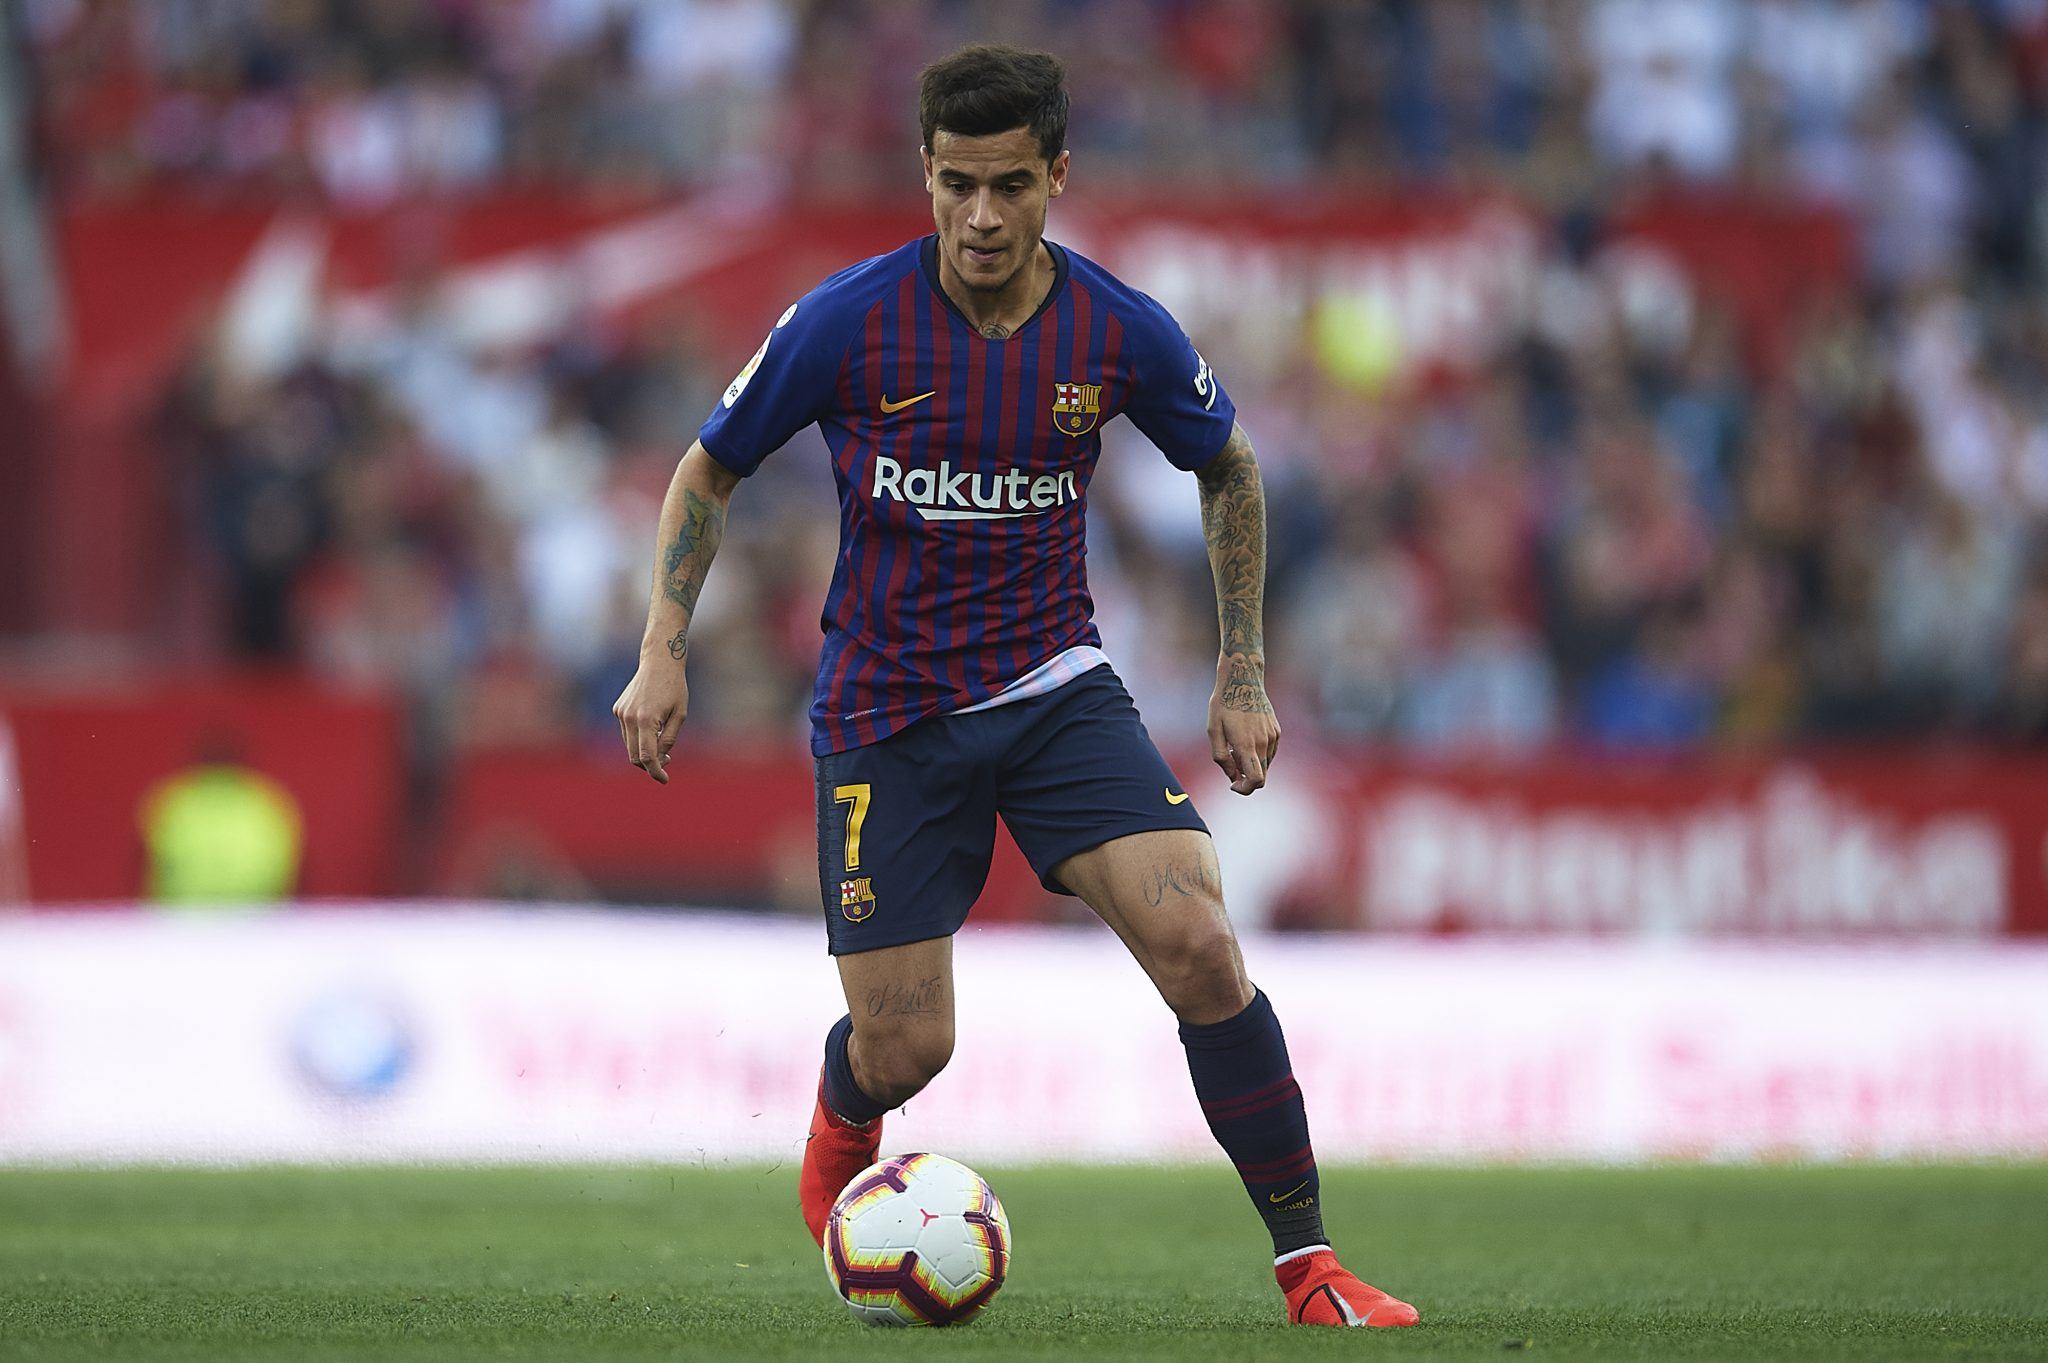 Barcelona ready to part with Coutinho for 130 million euros